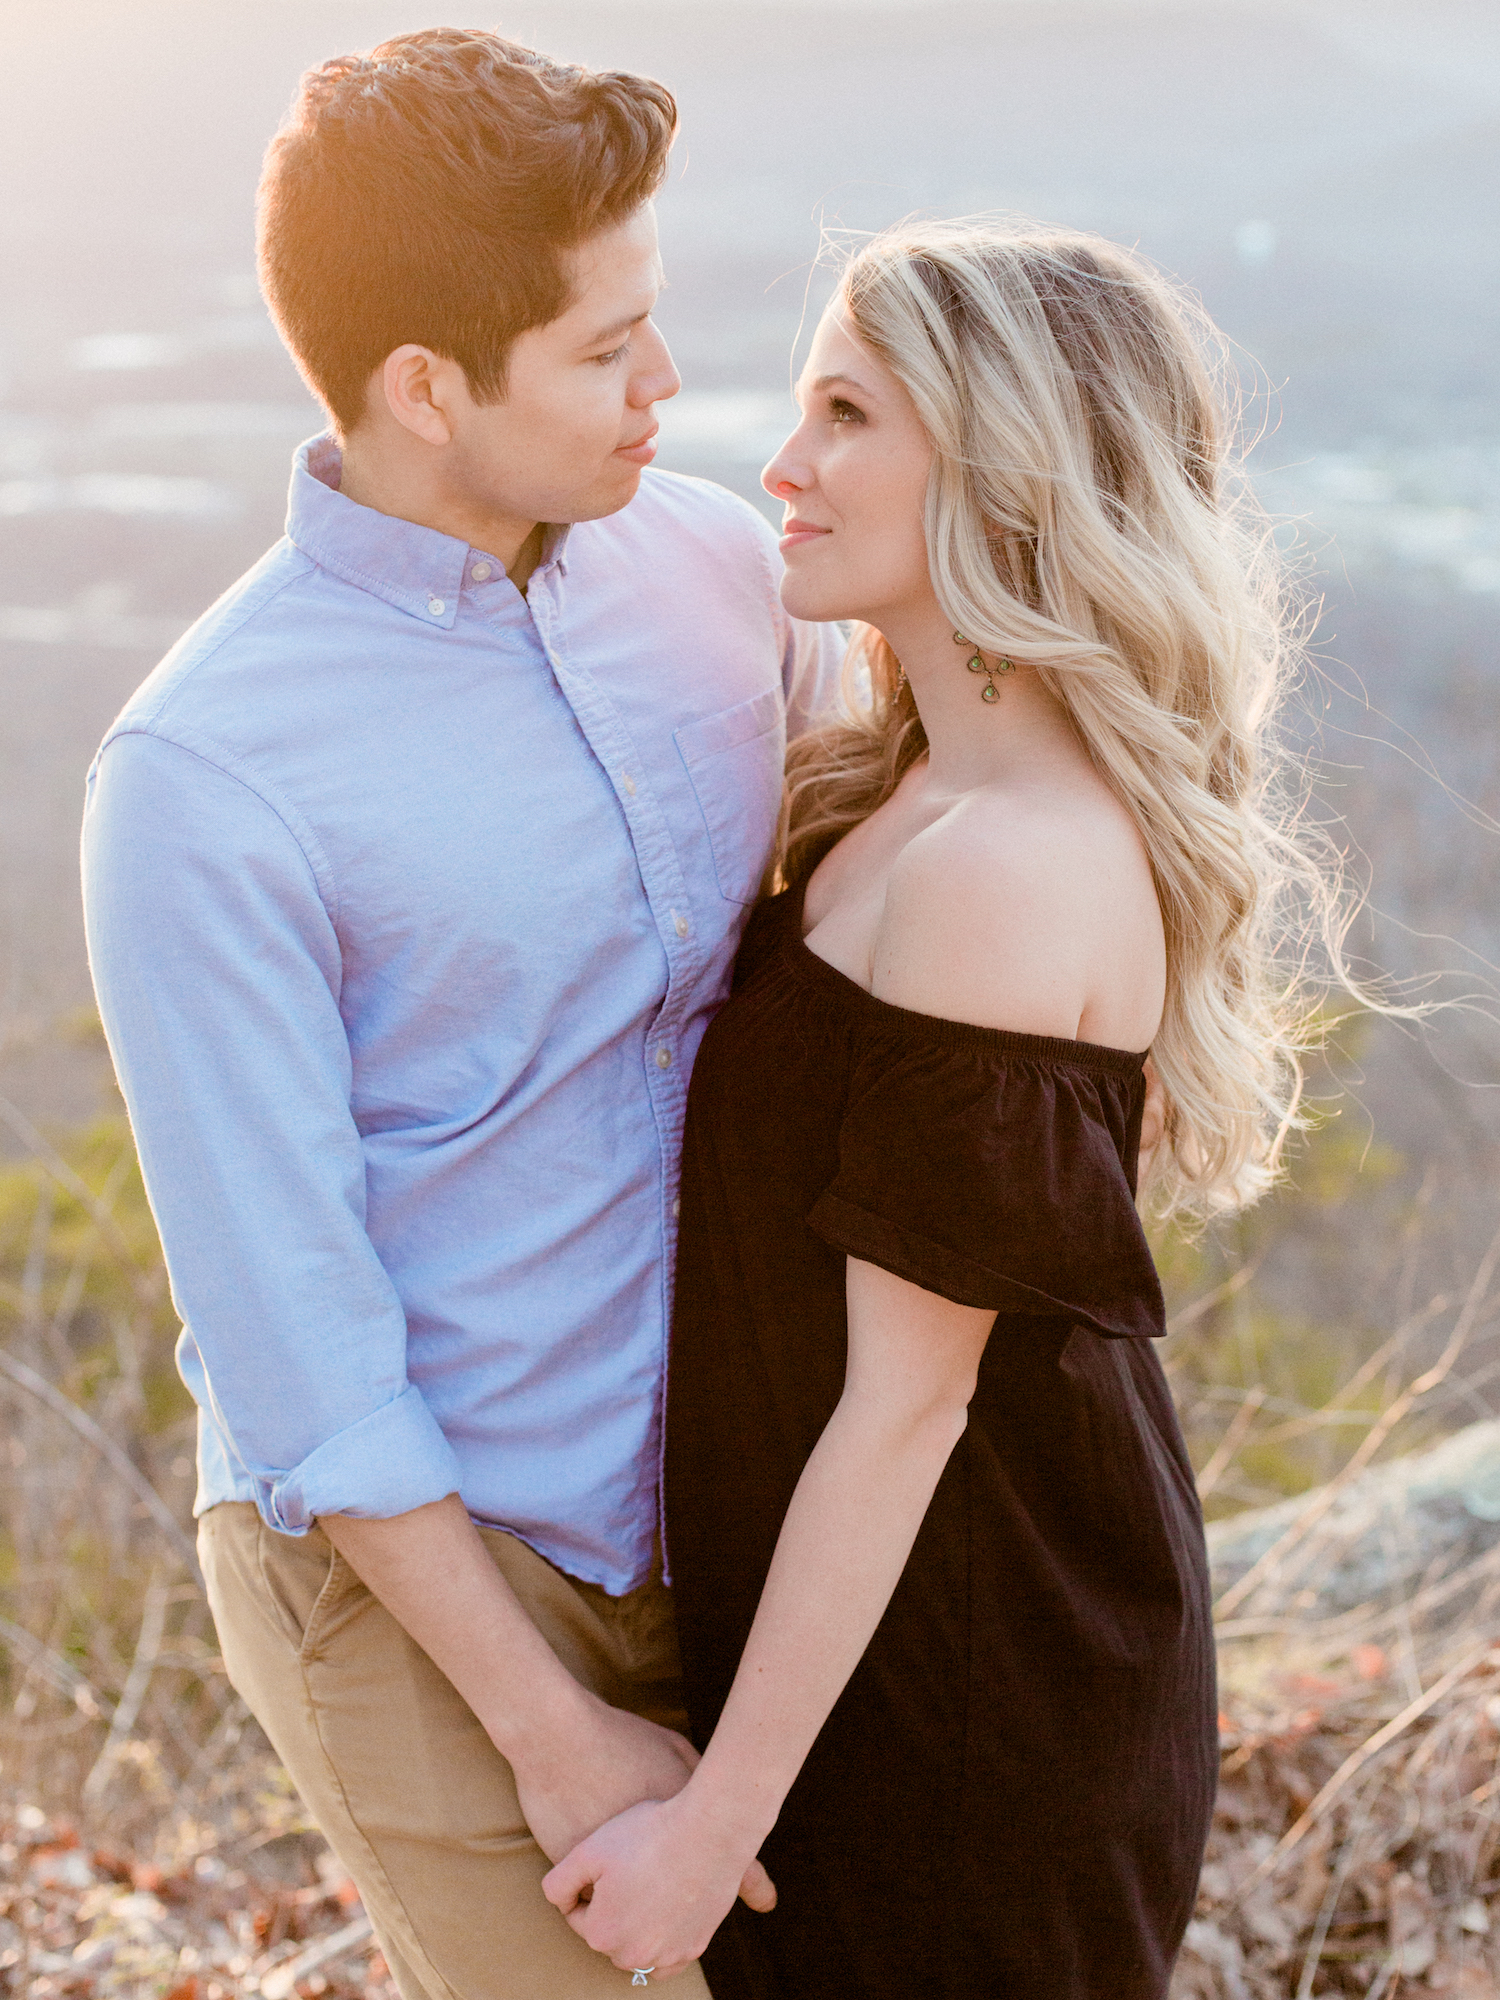 Dreamy, romantic, sunset fine art photography anniversary session at Point Park in Chattanooga, Tennessee by Kesia Marie Photography featuring golden hour, pastel colors, and beautiful mountain views.